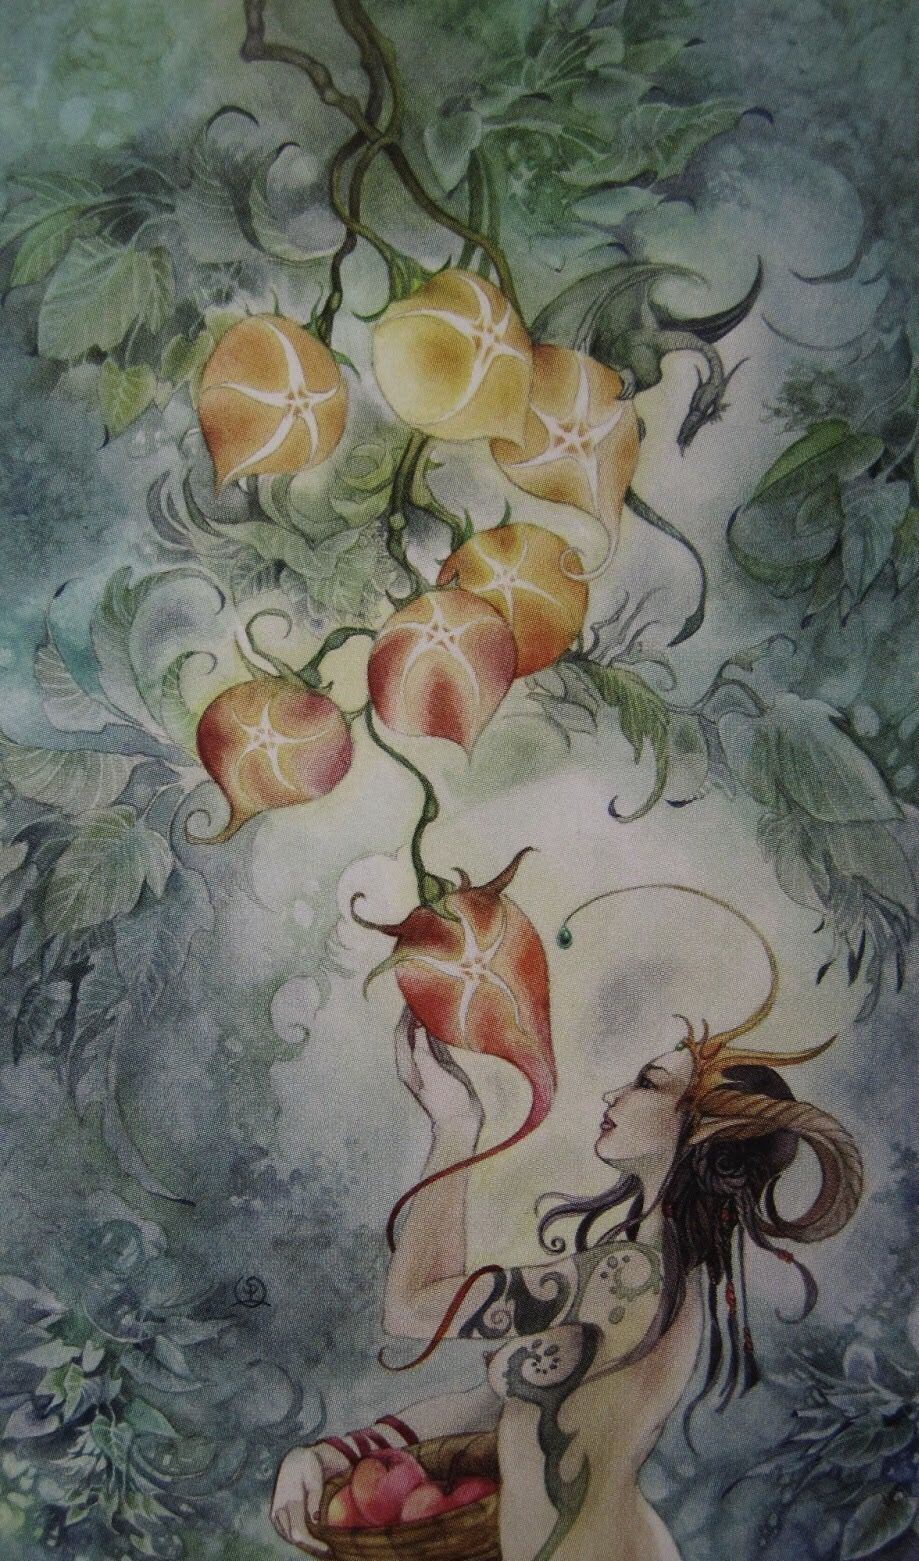 Card of the Day – 7 of Pentacles – Tuesday, November 21, 2017 — Tarot by Cecelia